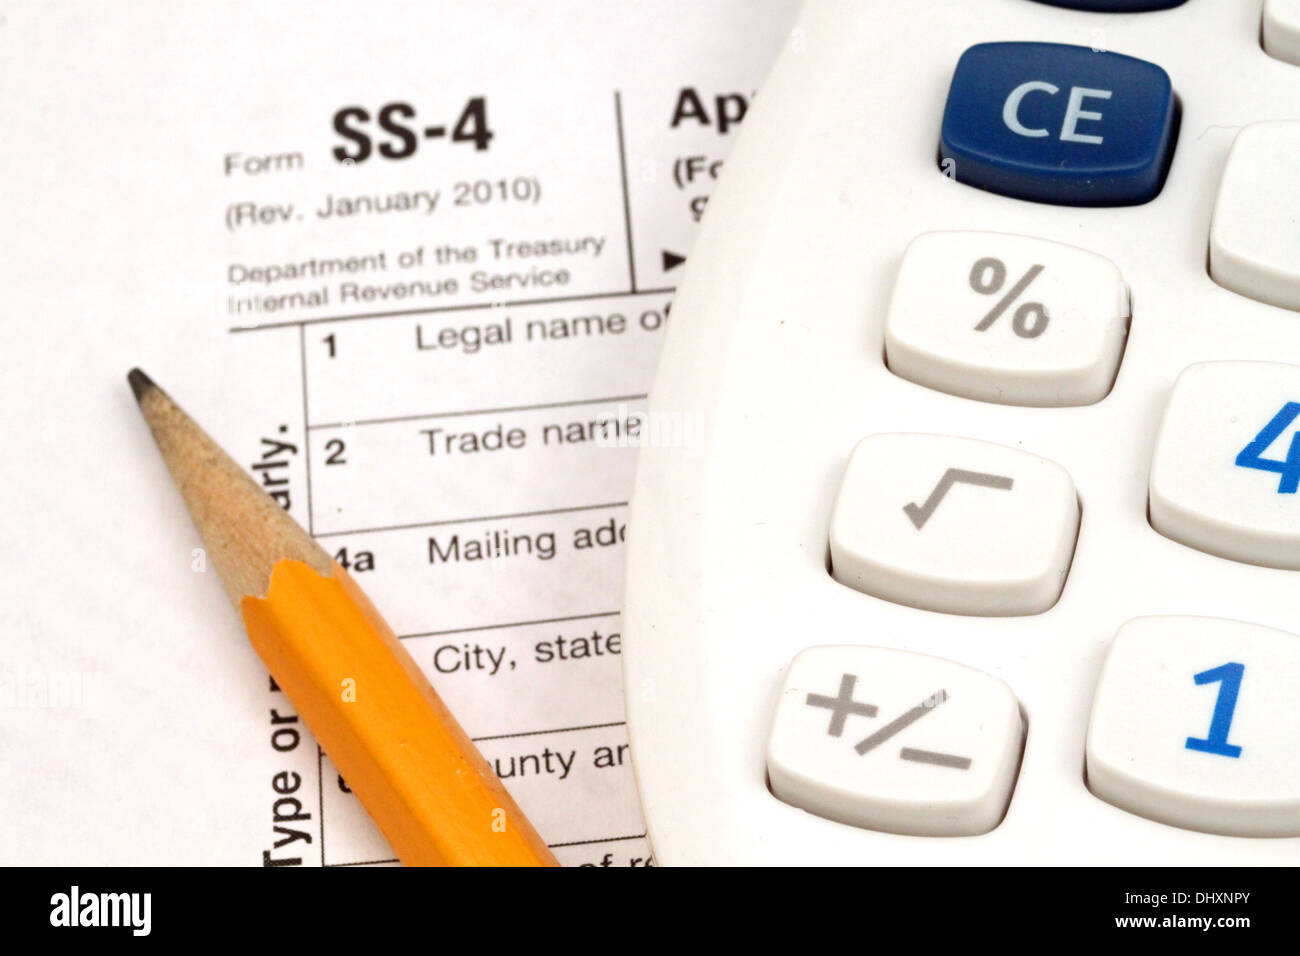 IRS Form SS-4 with tax prep tools Stock Photo: 62668115 - Alamy